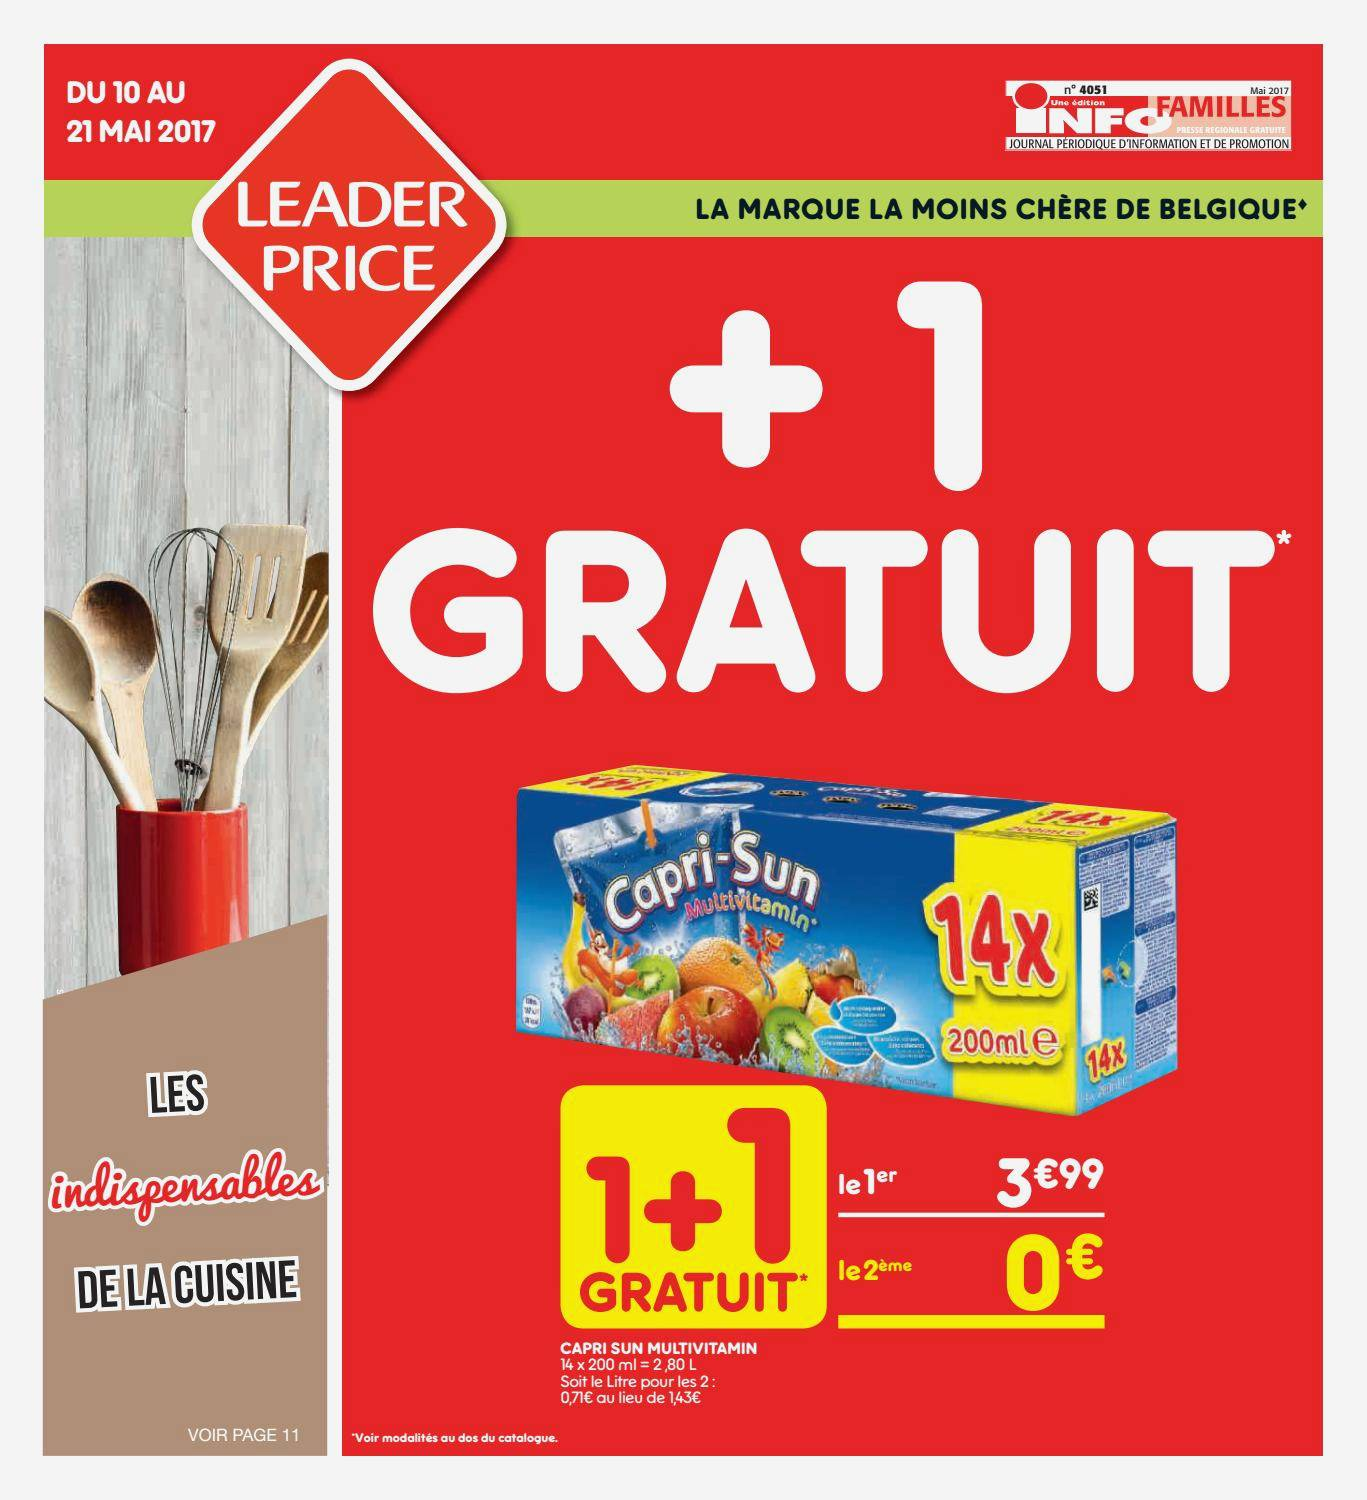 lettre de motivation pour leader price